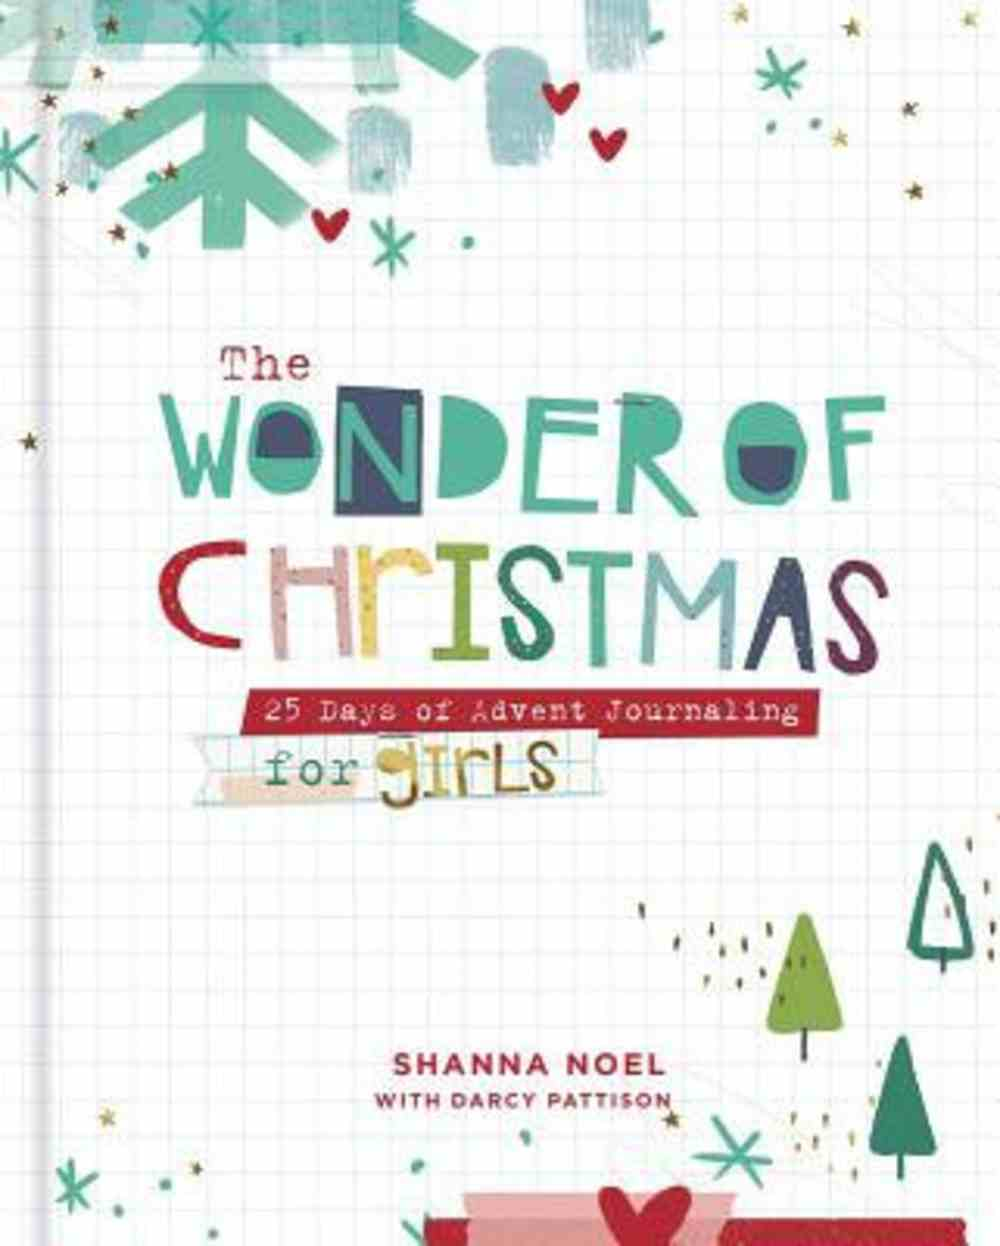 The Wonder of Christmas: Advent For Kids and Families Paperback